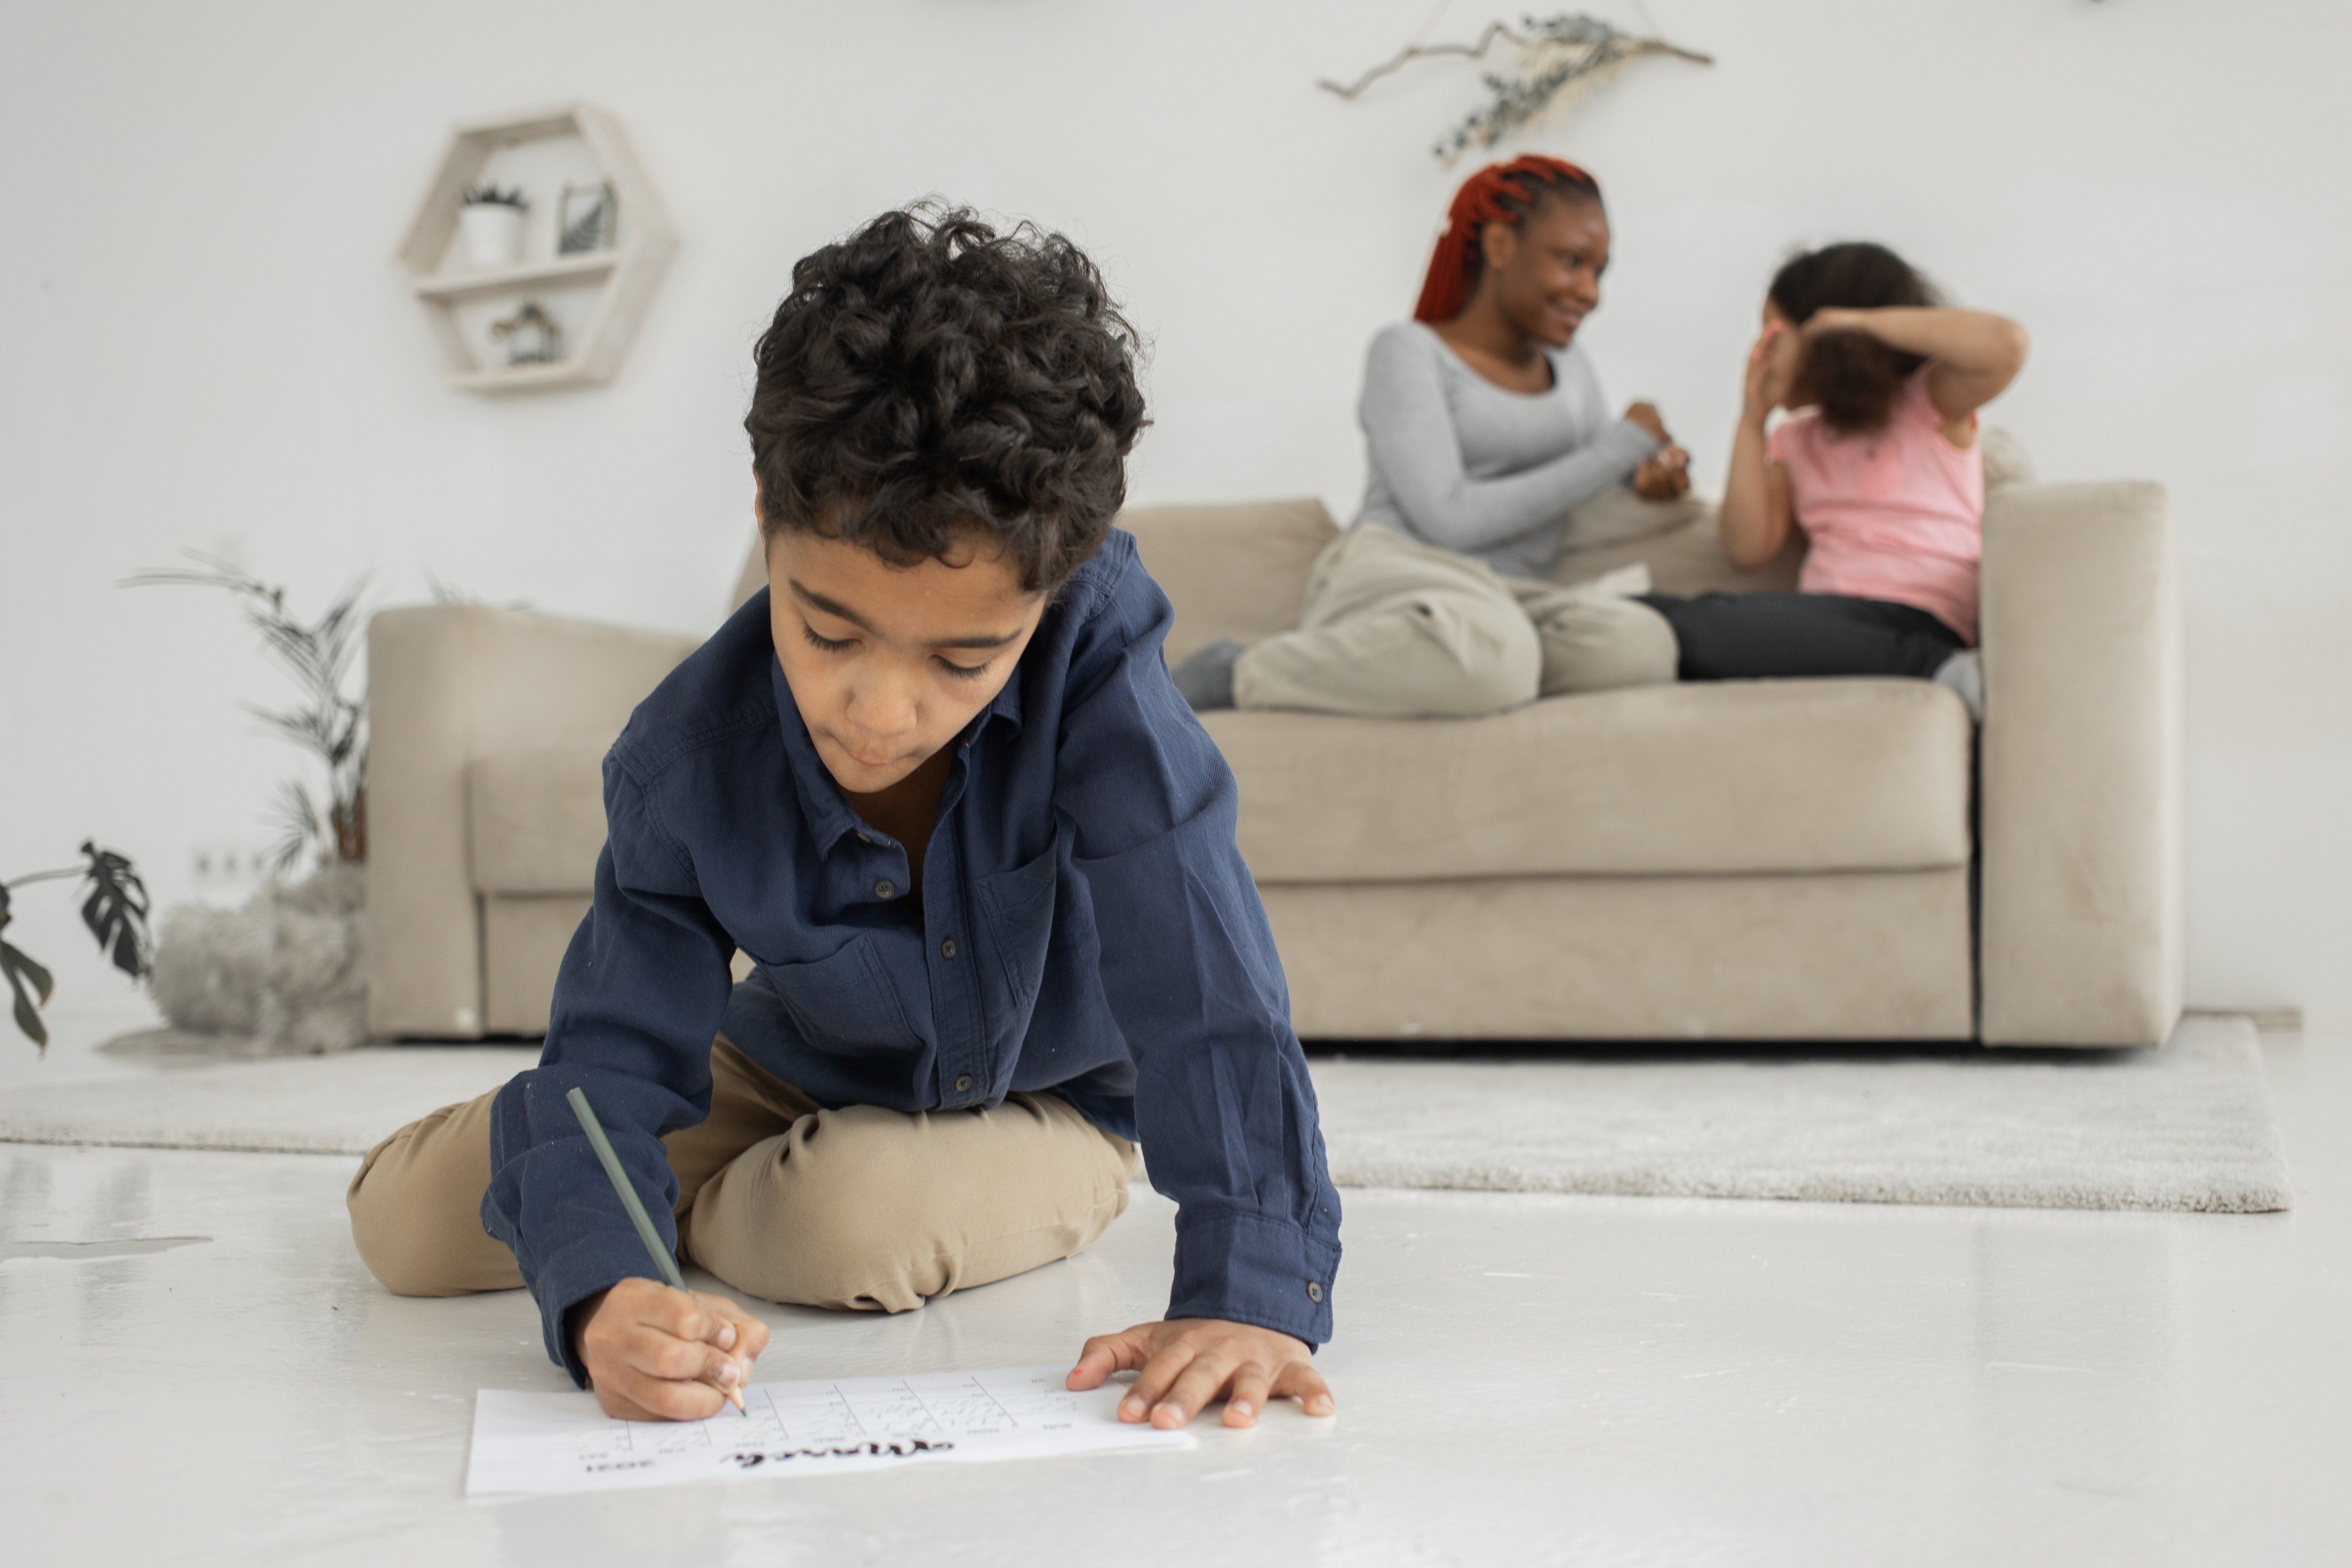 Raising Bilingual Kids: Why Learning Two Languages Can Enrich A Child's Life